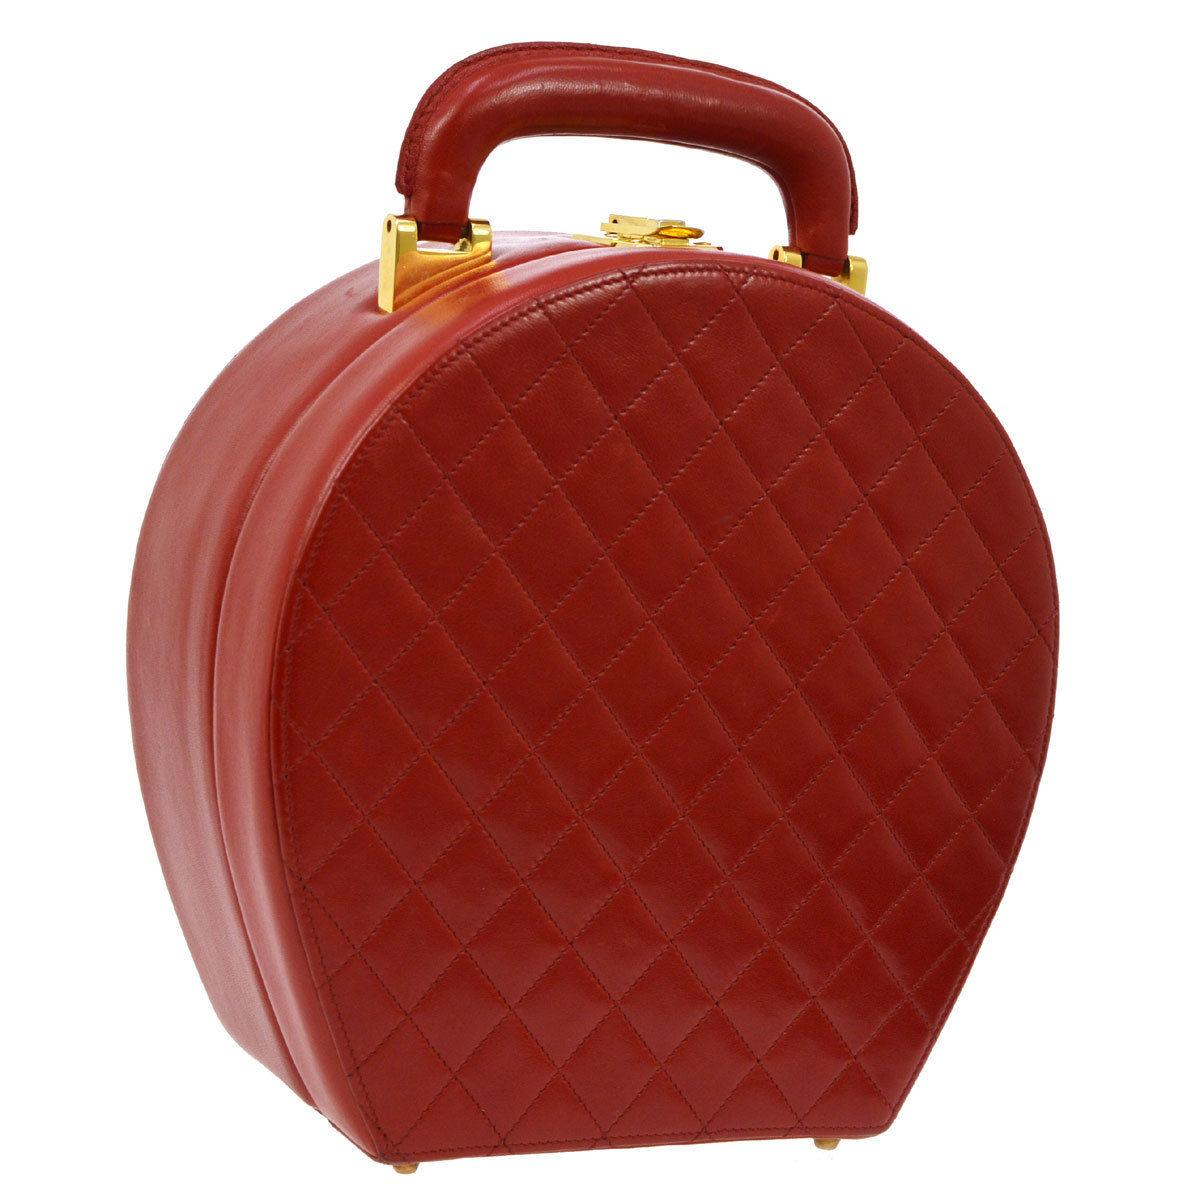 Chanel Rare Red Leather Top Handle Travel Jewelry Carry on Bag